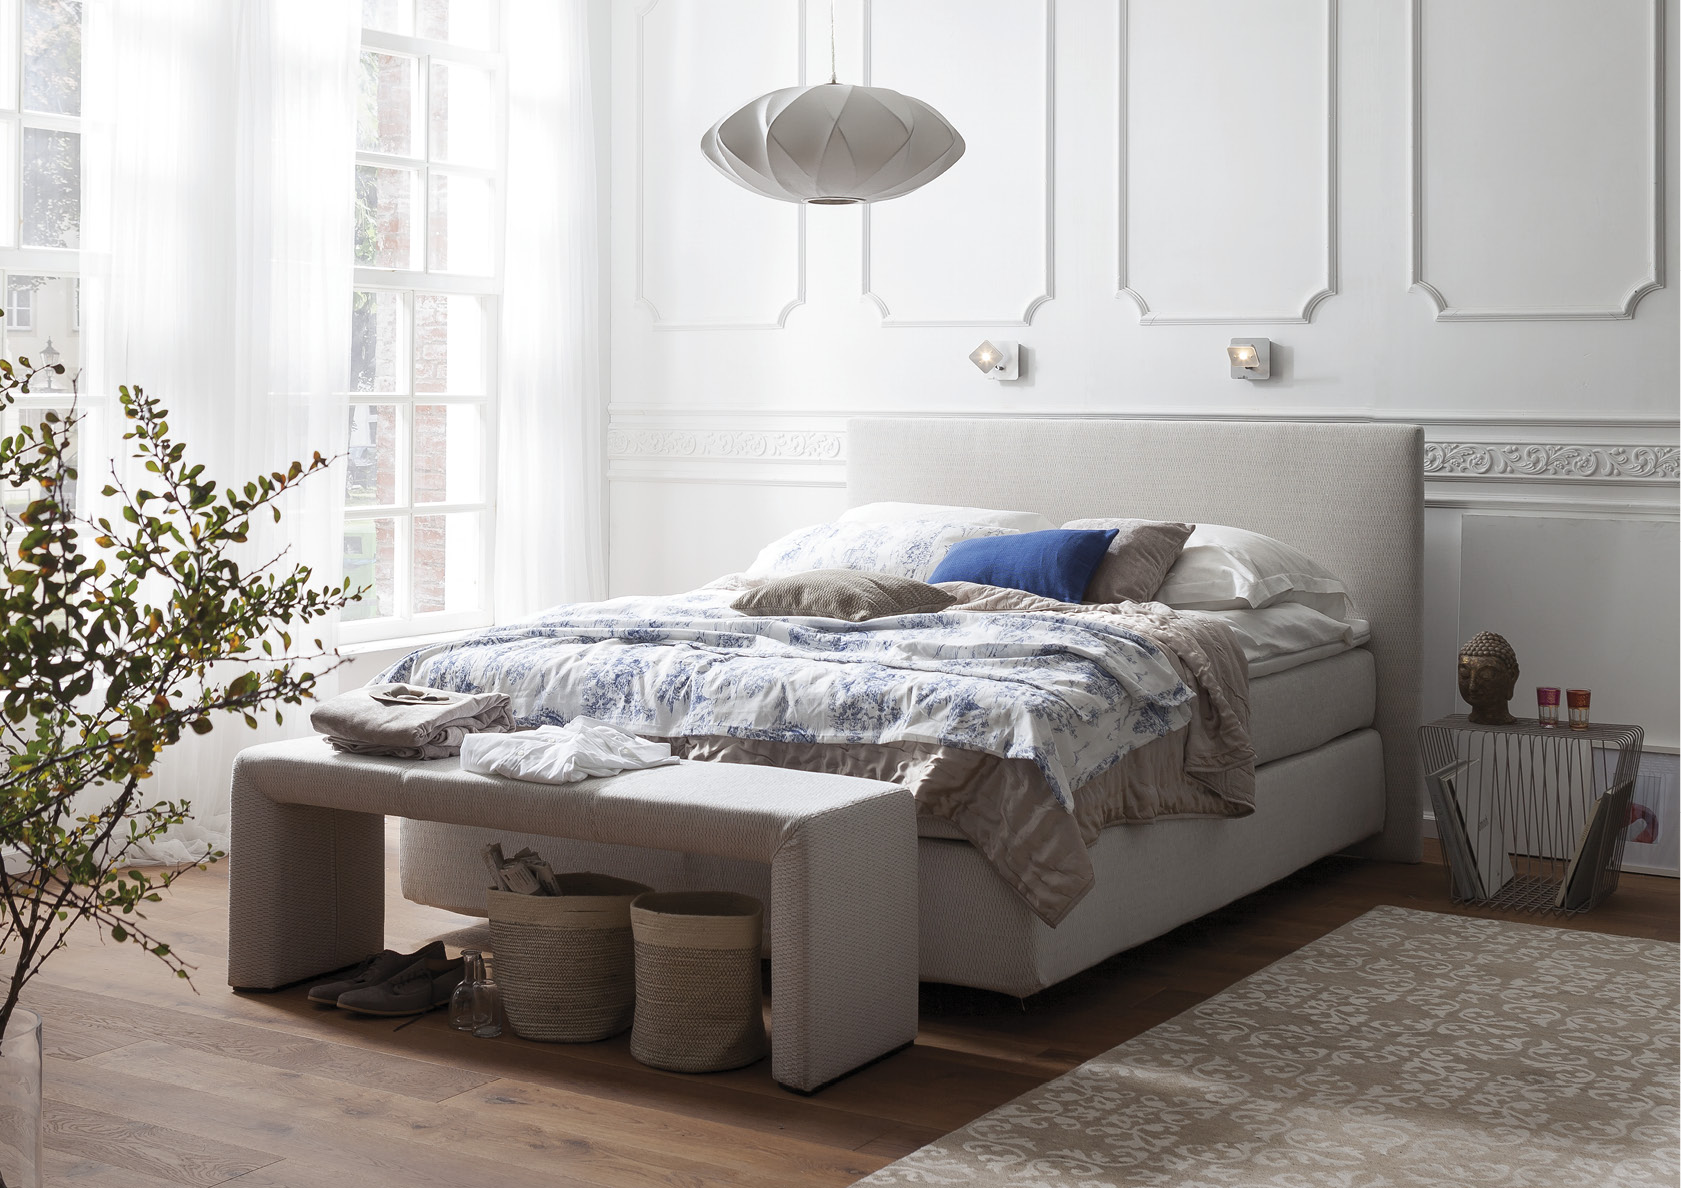 FAVORI Boxspringbett